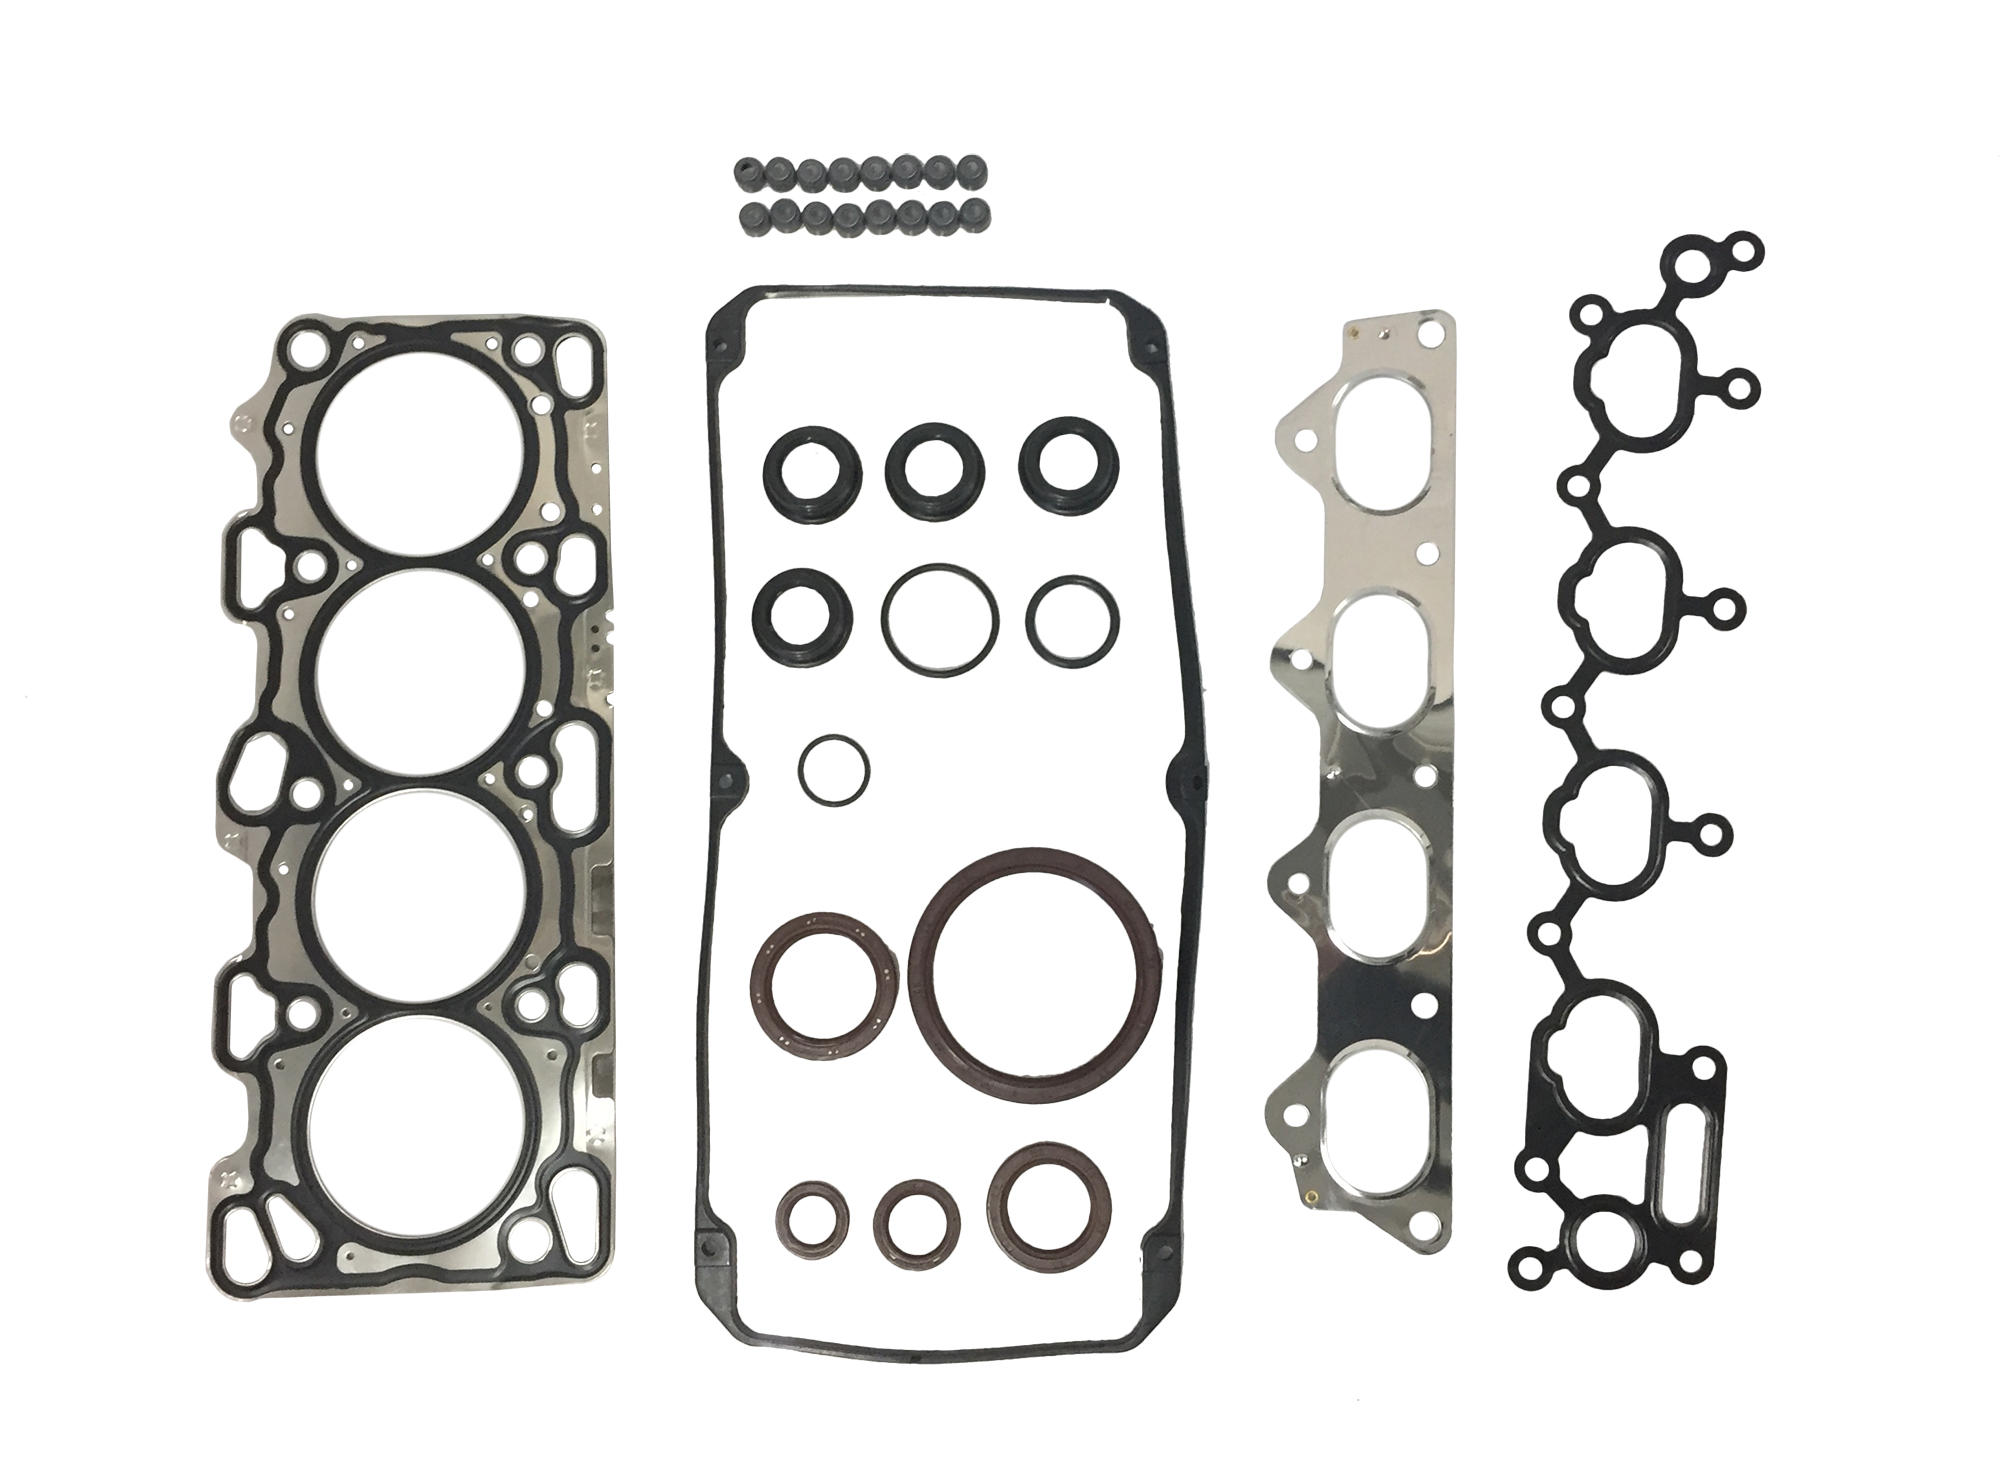 Gasket set cylinder head gasket Mitsubishi Eclipse II 2.0 16V 4G63 NEW